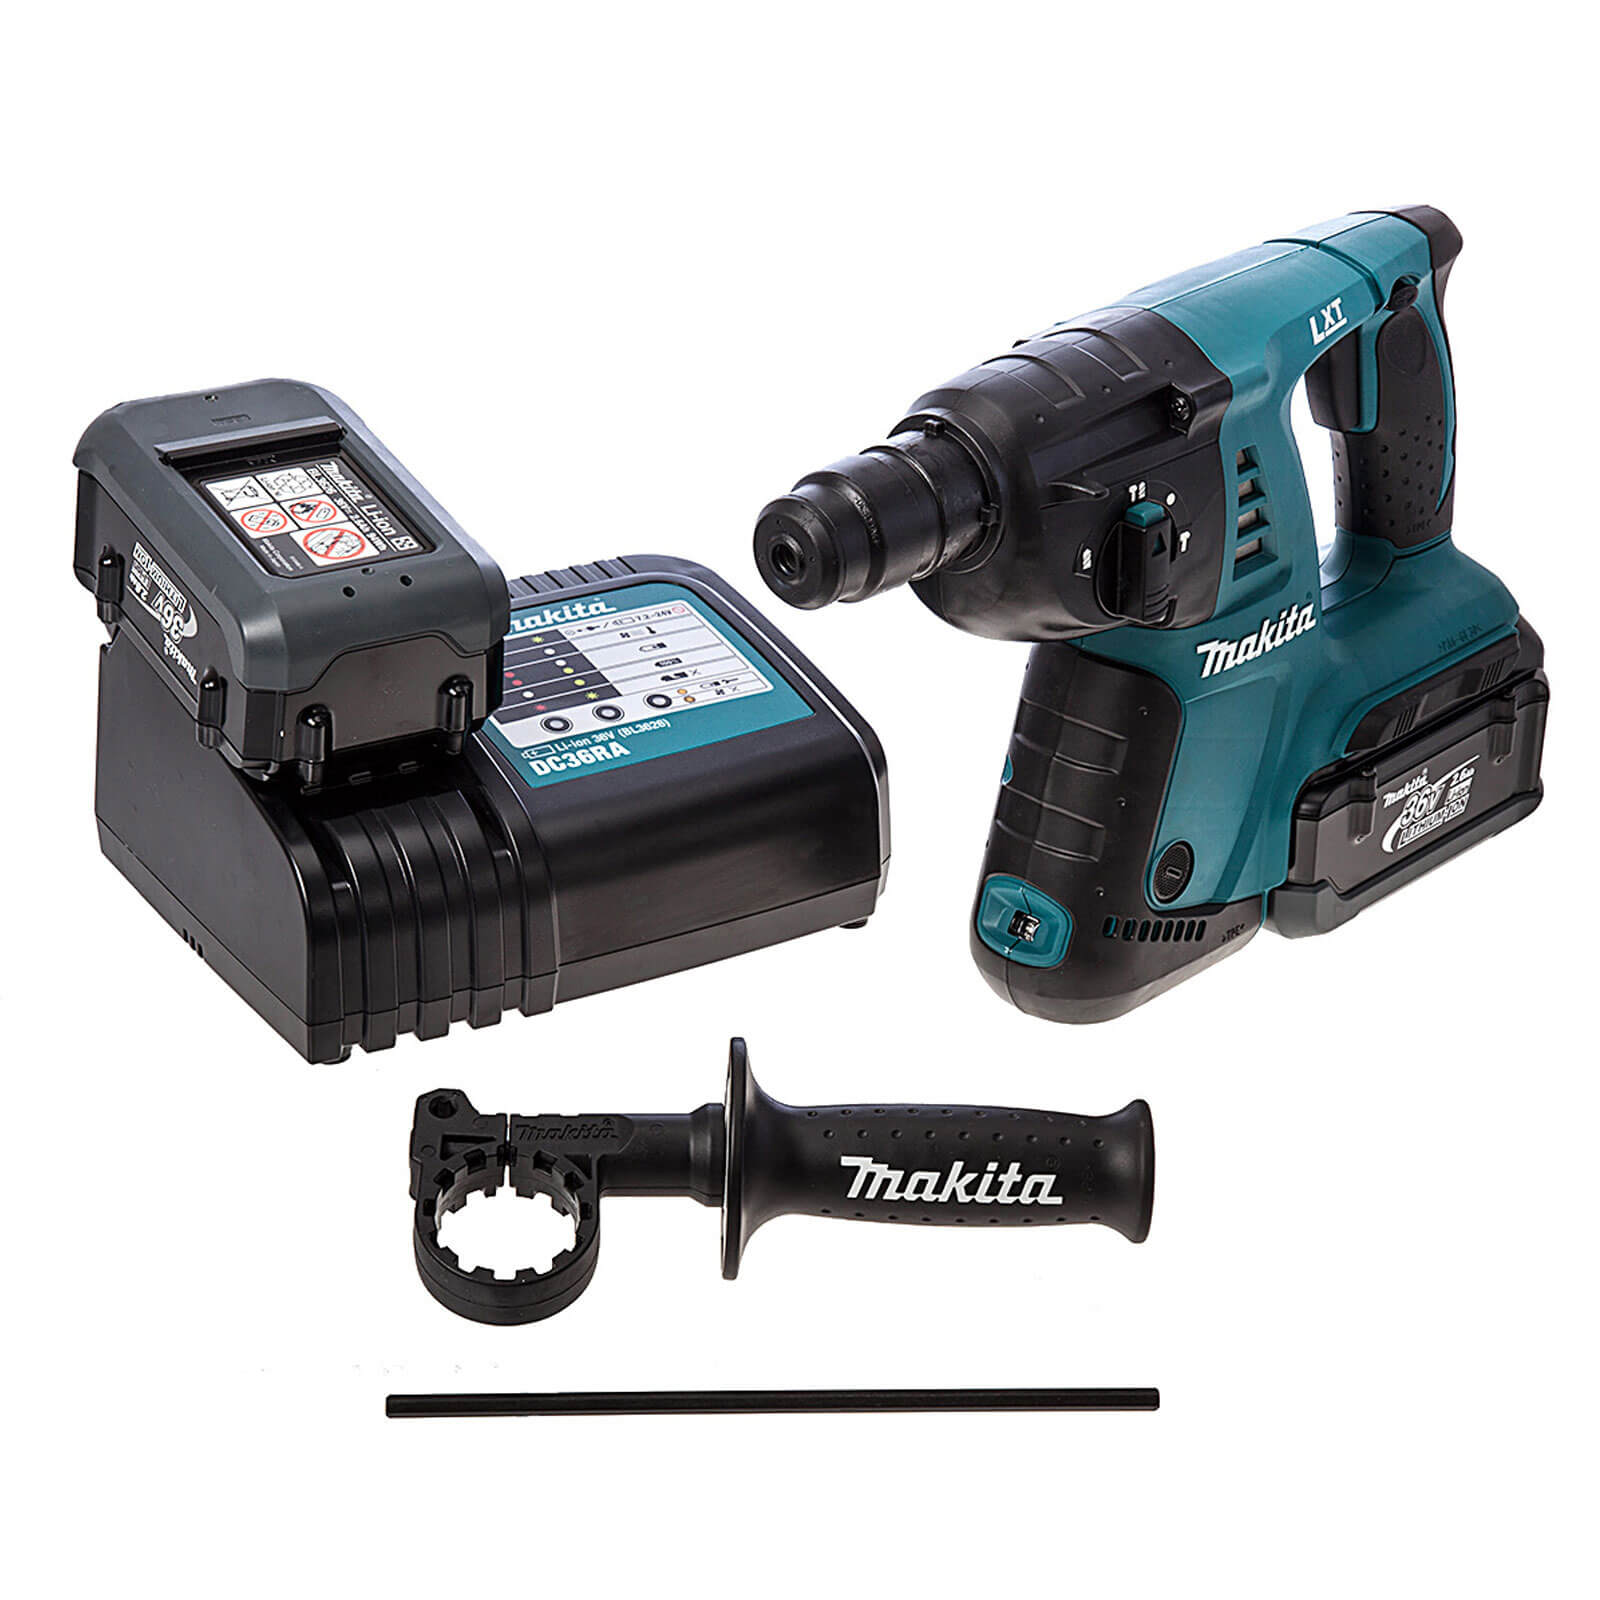 Image of Makita BHR262RDE 36v Cordless LXT SDS Hammer Drill 2 x 2.6ah Li-ion Charger Case